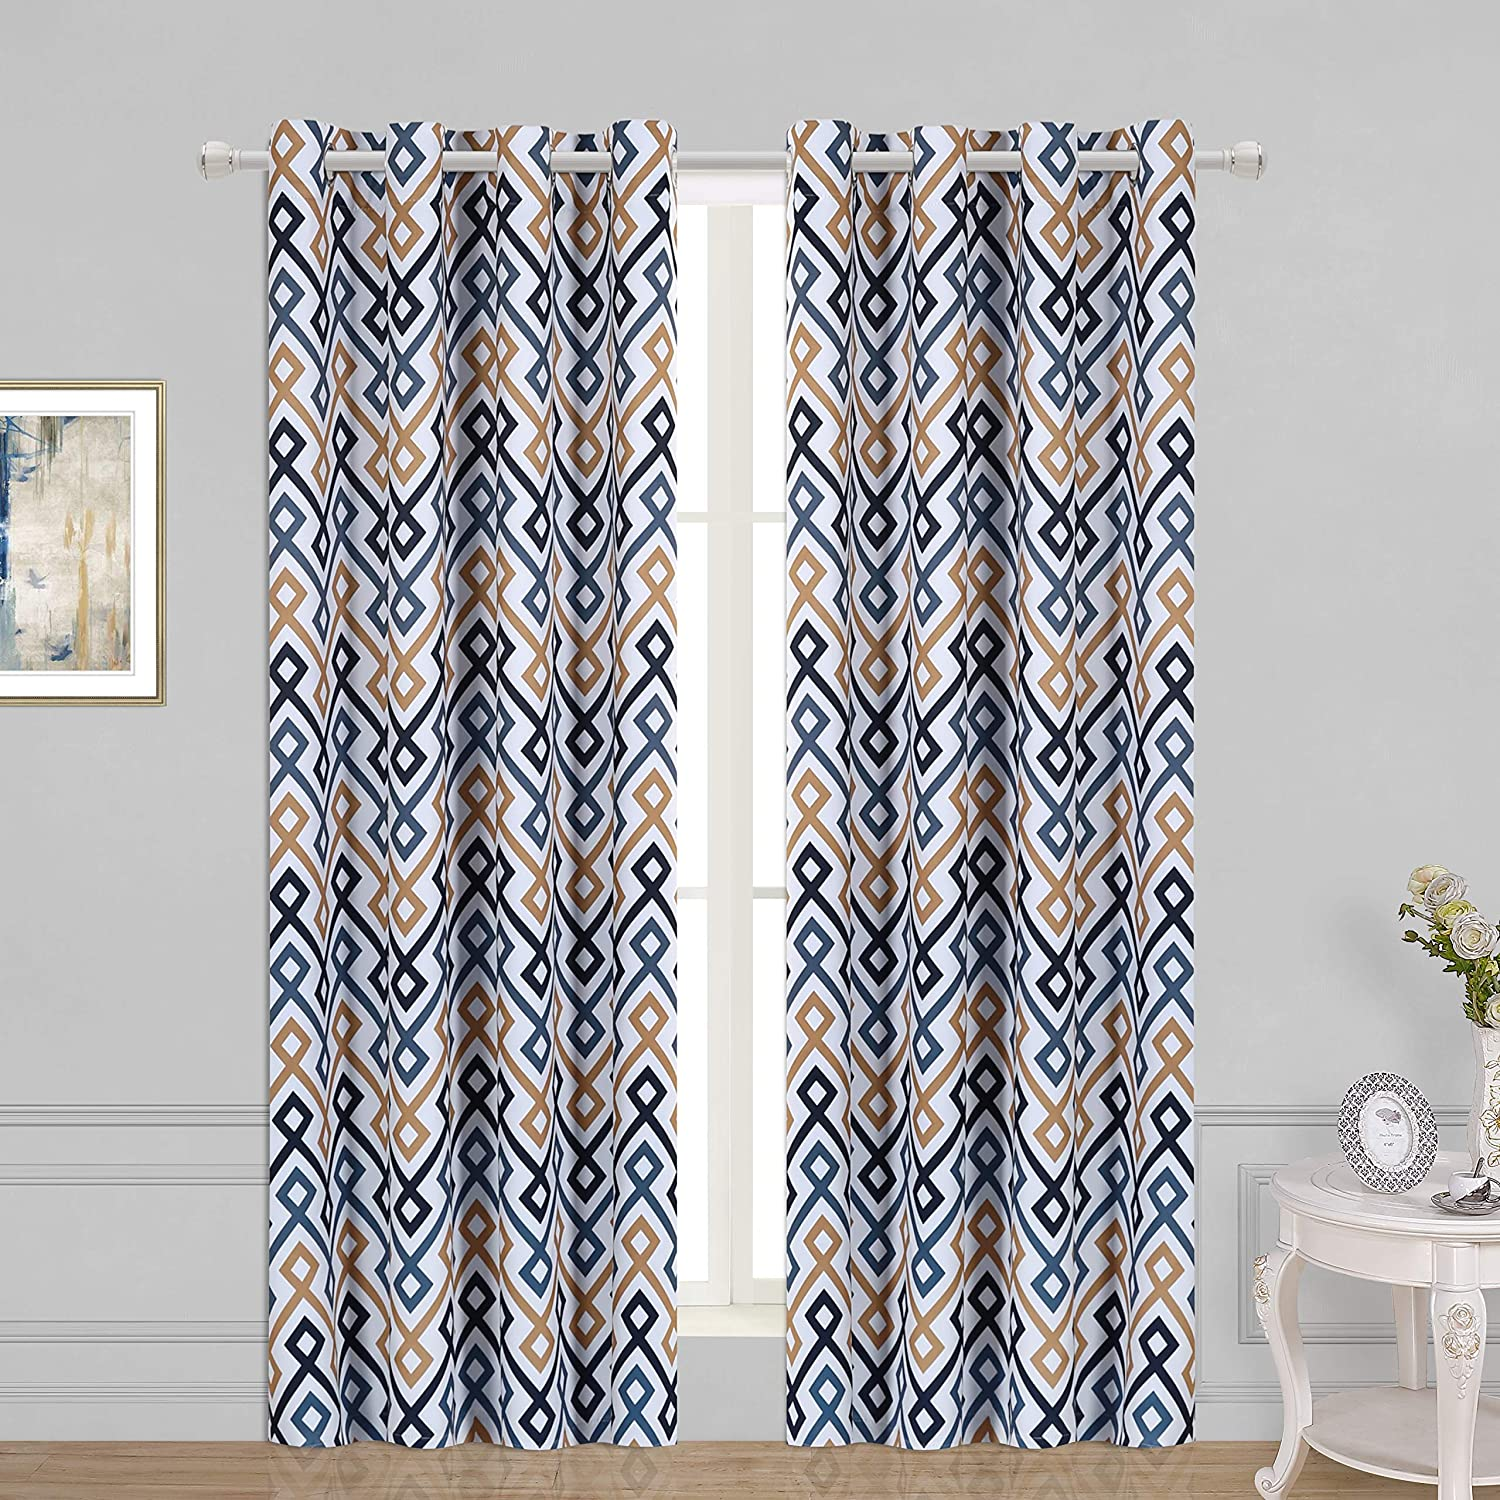 Navy Set Of 2 Curtain Panels Grommet Room Darkening Curtains For Living Room And Bedroom Wontex Geometric Trellis Printed Thermal Insulated Blackout Curtains 52 X 72 Inch Home Décor Draperies Curtains